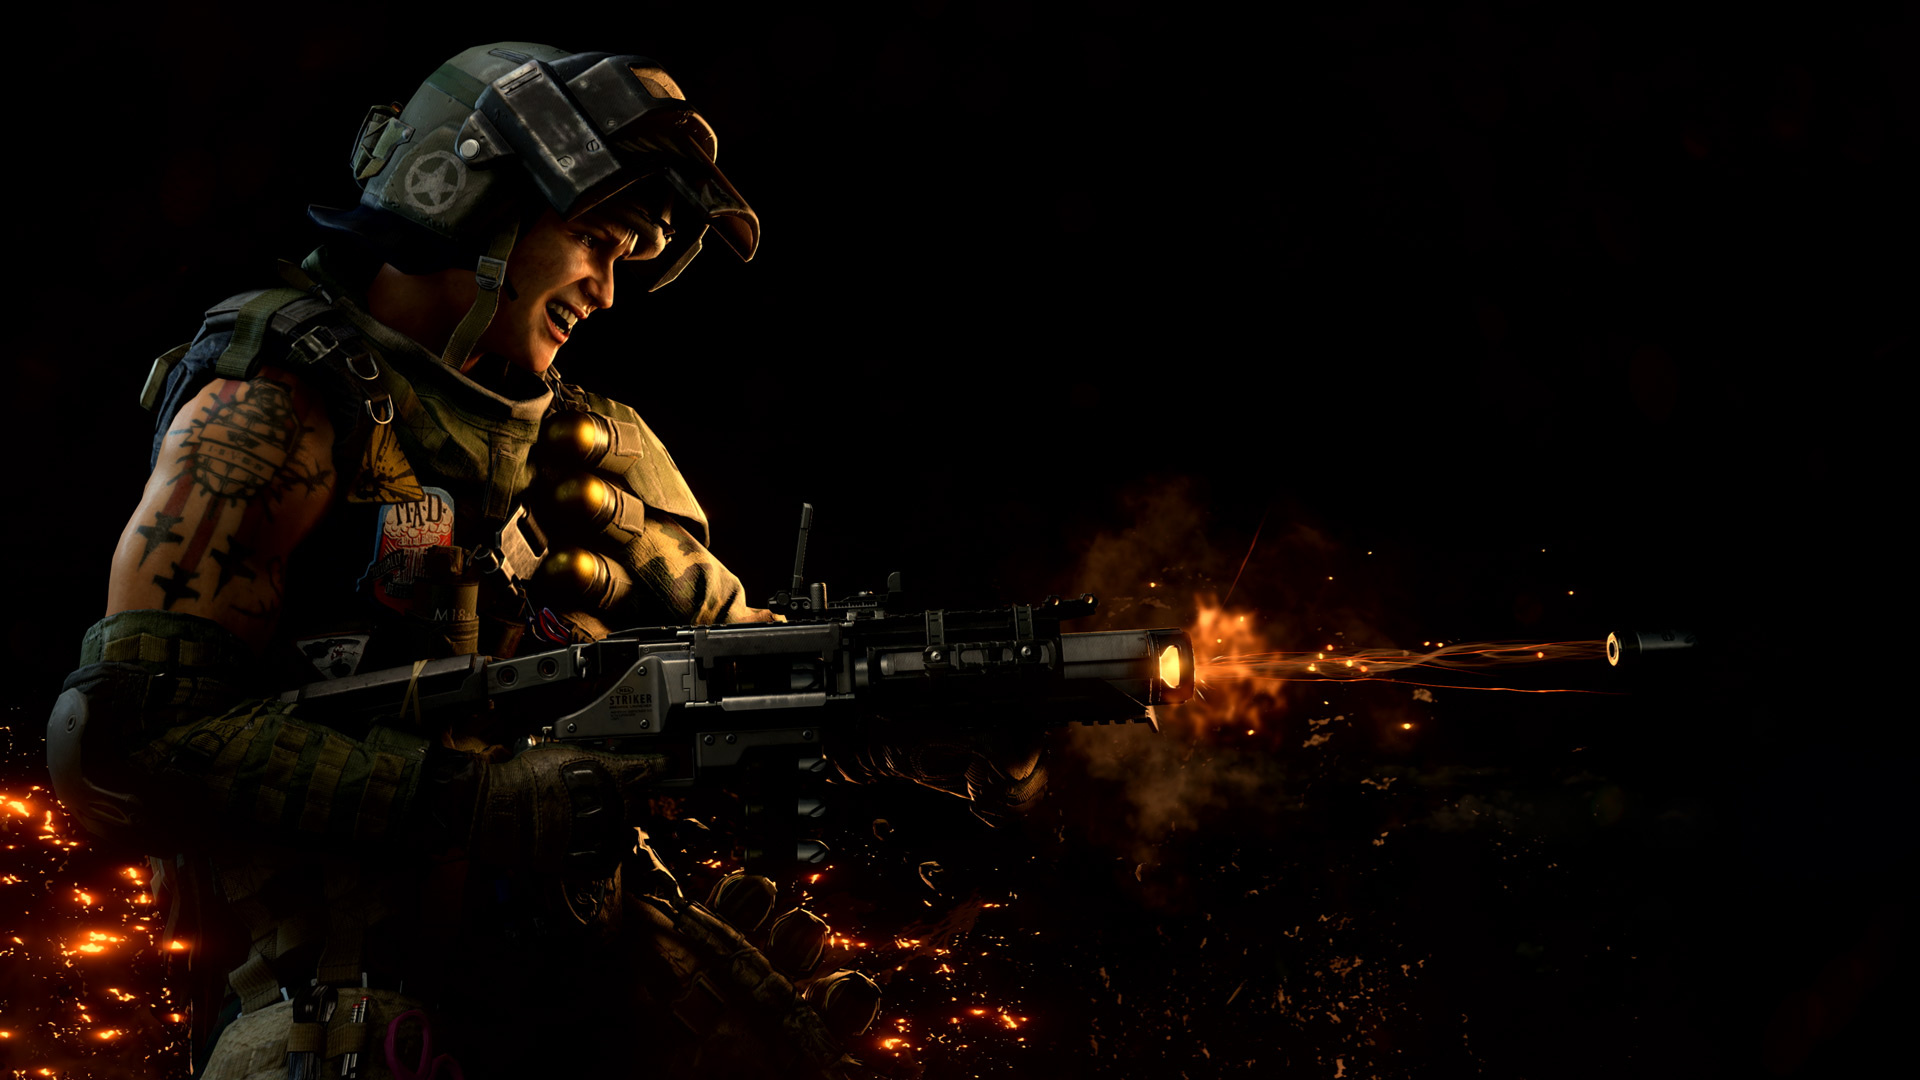 'Call of Duty' Blackout Is Making Crawl Speed Faster When Downed